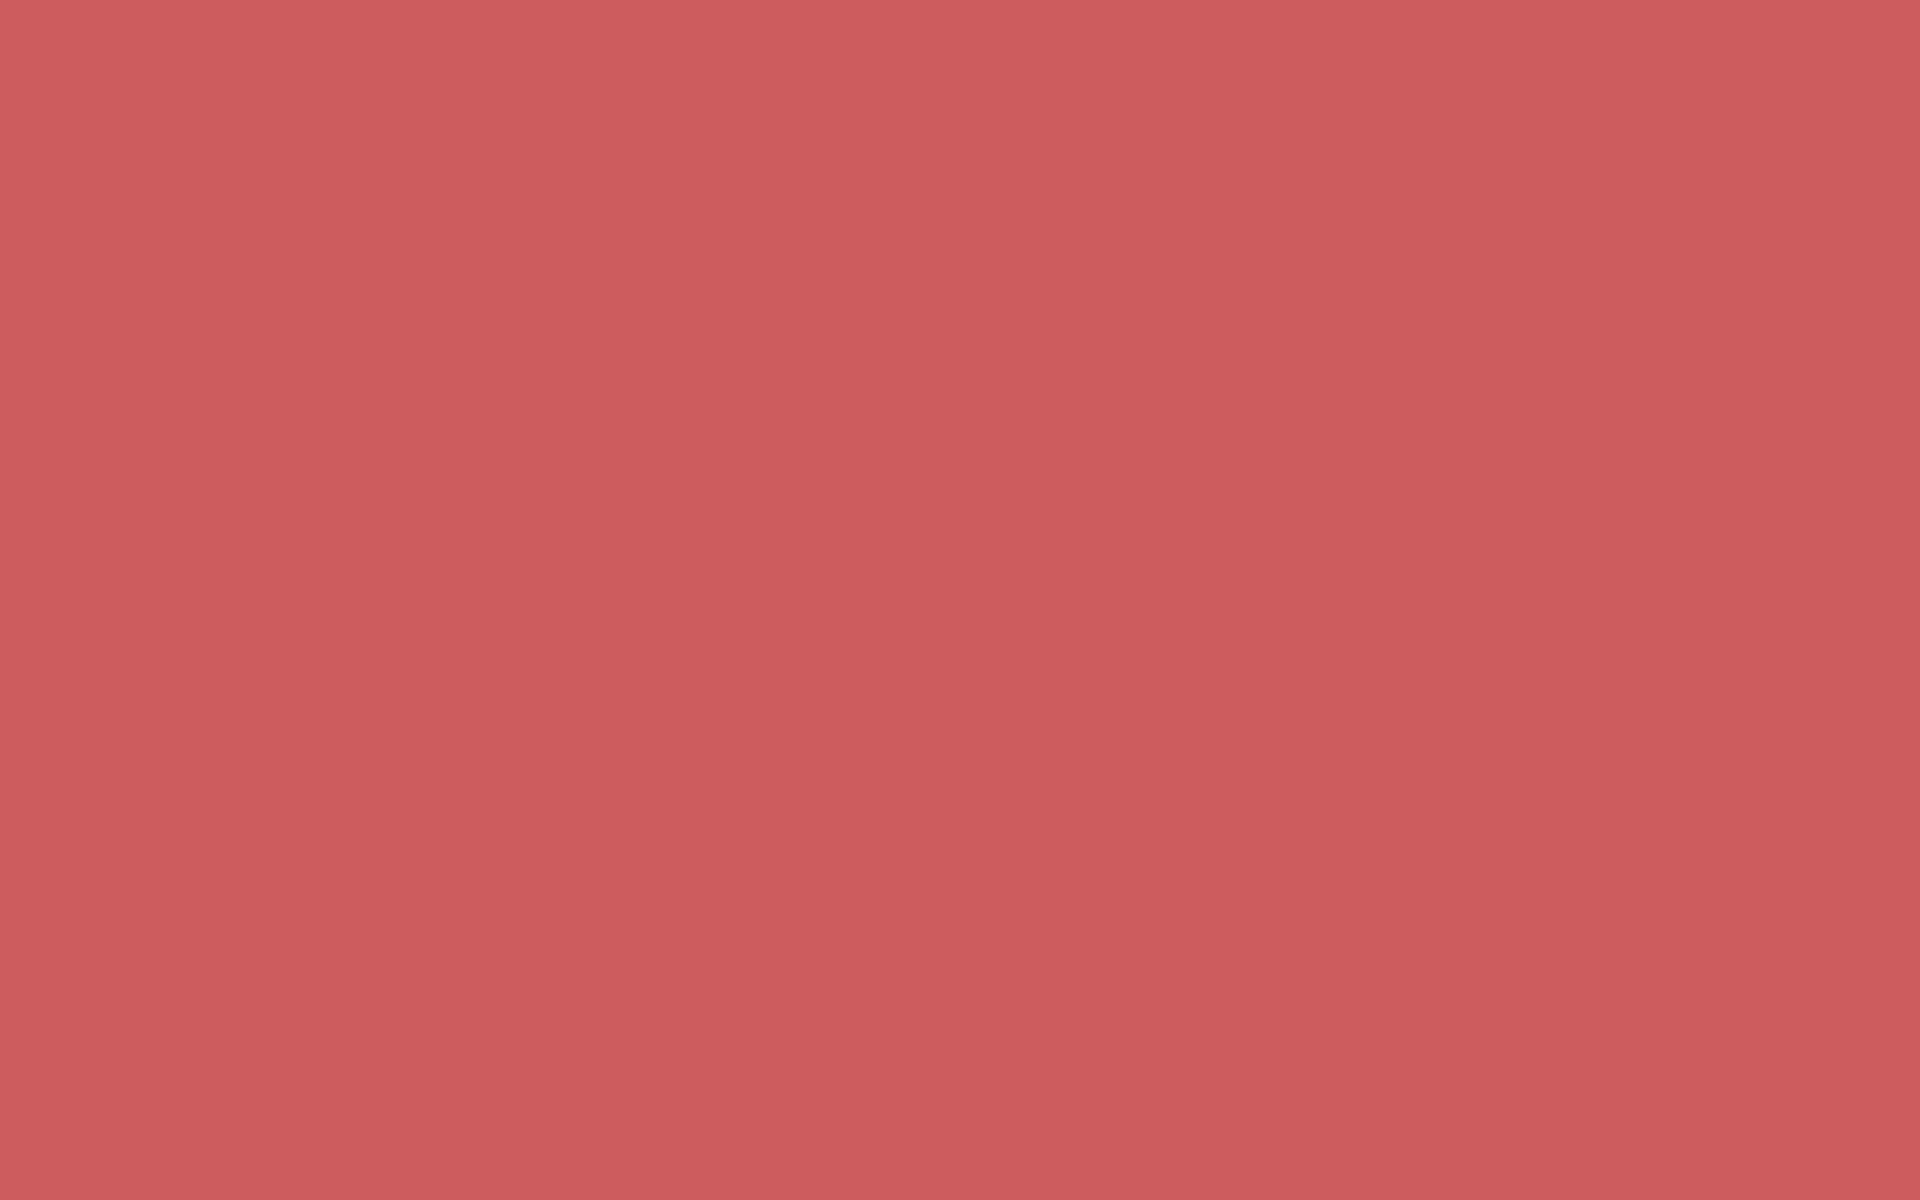 1920x1200 Indian Red Solid Color Background